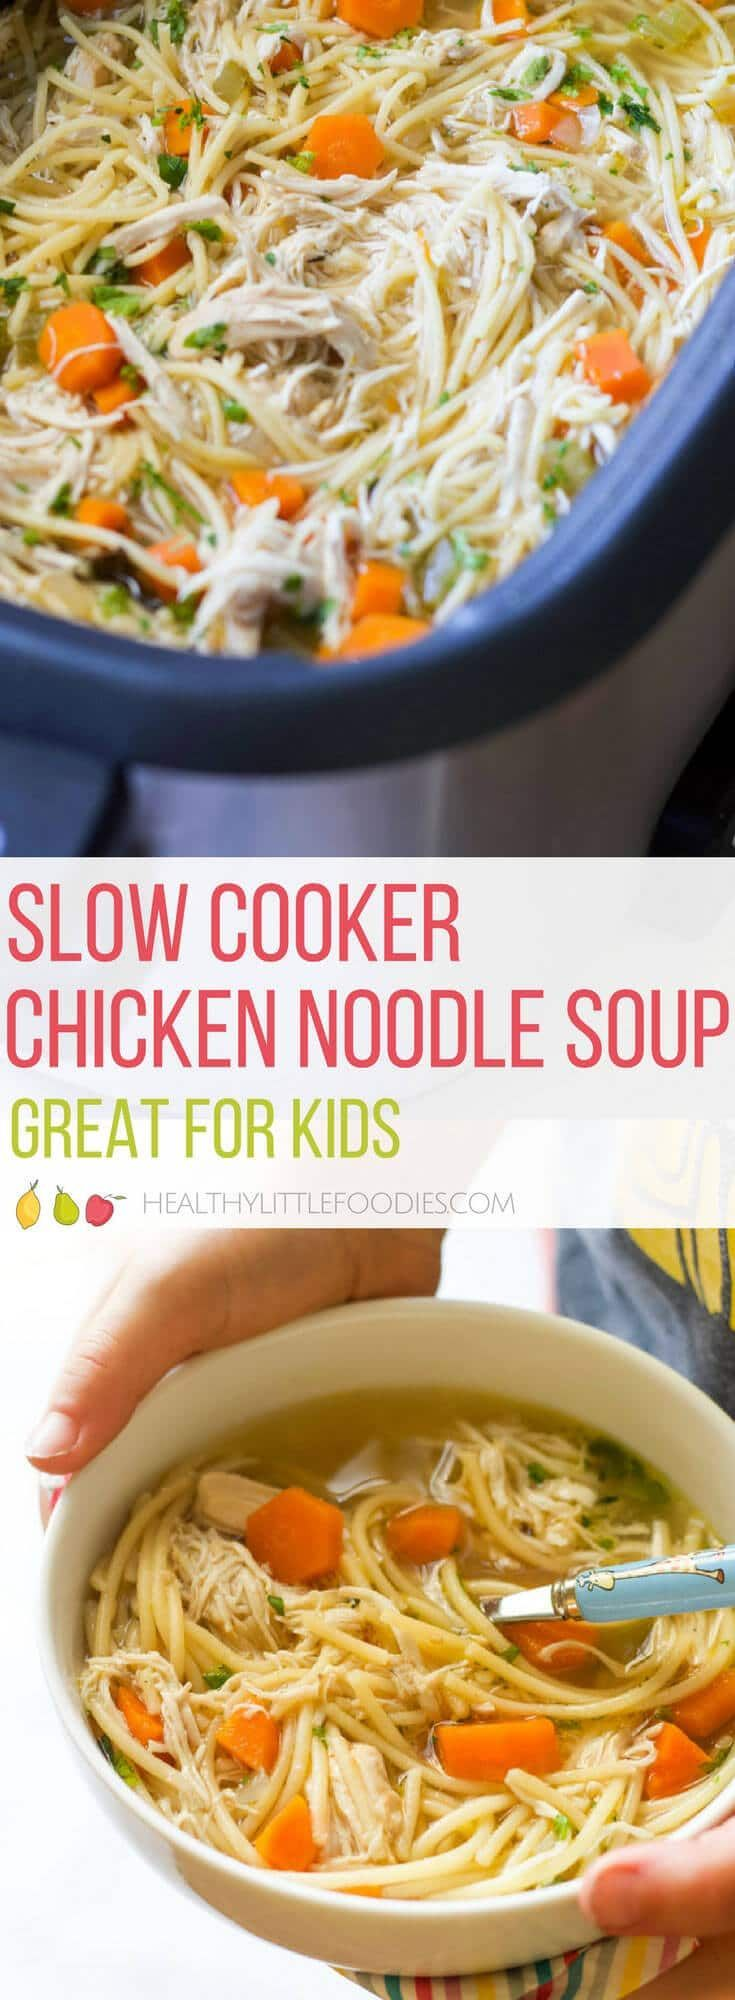 This is the BEST Slow Cooker Chicken Noodle Soup! No pre cooking required, just dump and cook. Perfect for busy parents. LOVED by kids! #soup #slowcookerrecipes #slowcookersoup #kidsfood via @hlittlefoodies